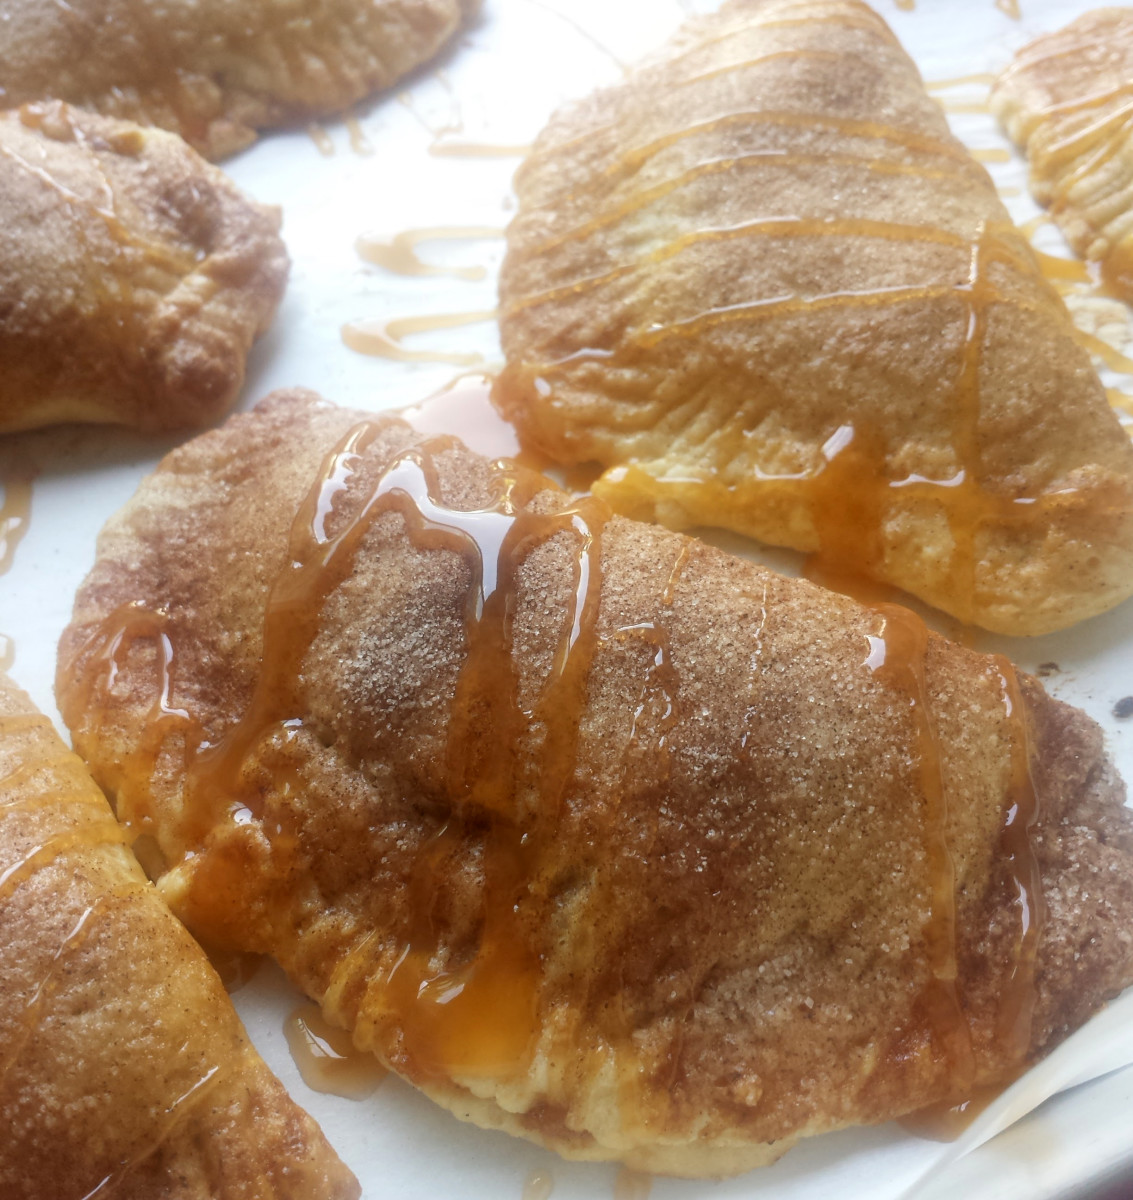 Yum! Caramel apple empanadas that are healthier than Taco Bell's!